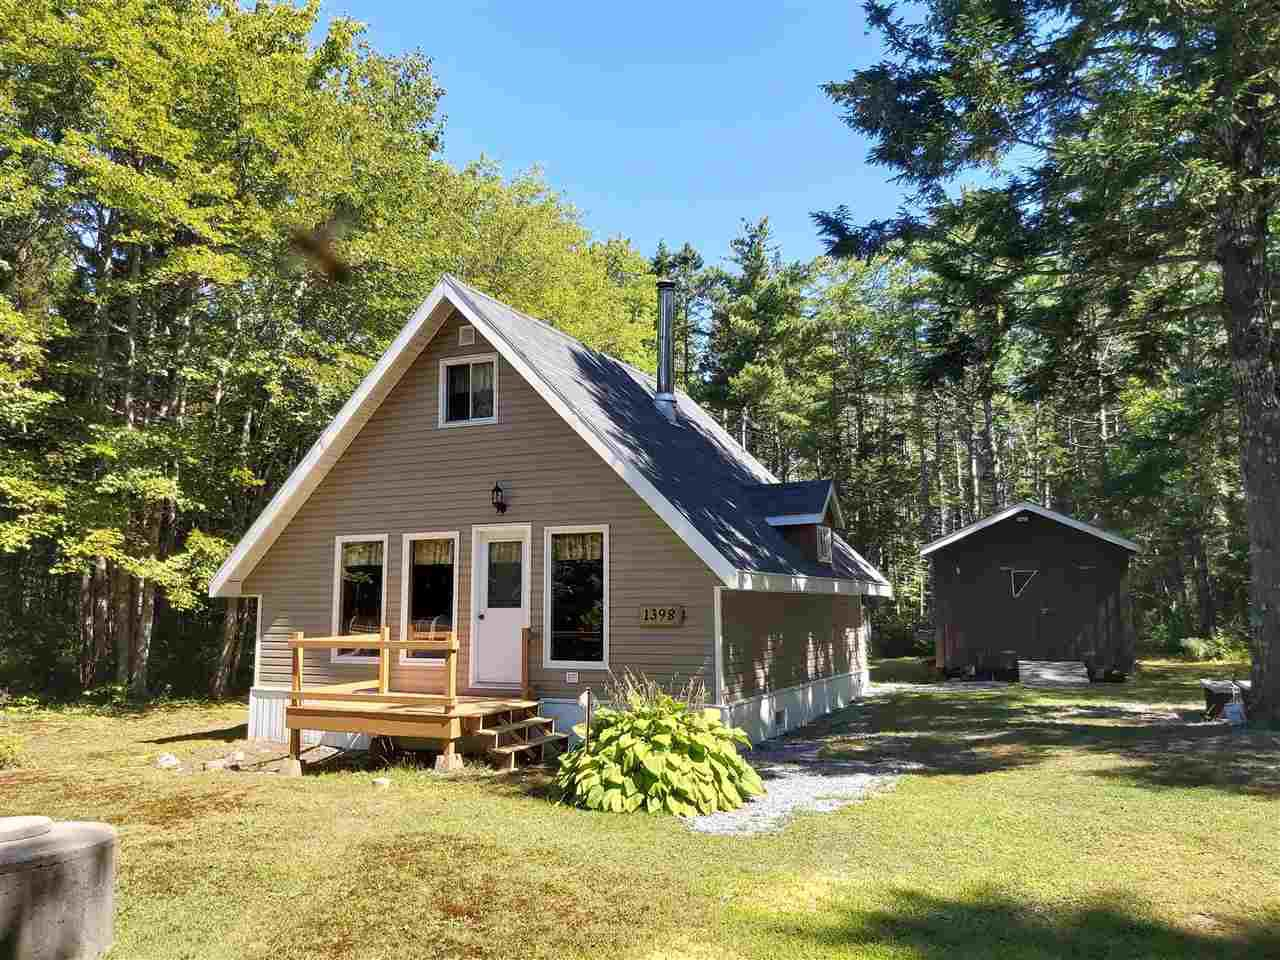 Main Photo: 1398 Canada Hill Road in Canada Hill: 407-Shelburne County Residential for sale (South Shore)  : MLS®# 201922378